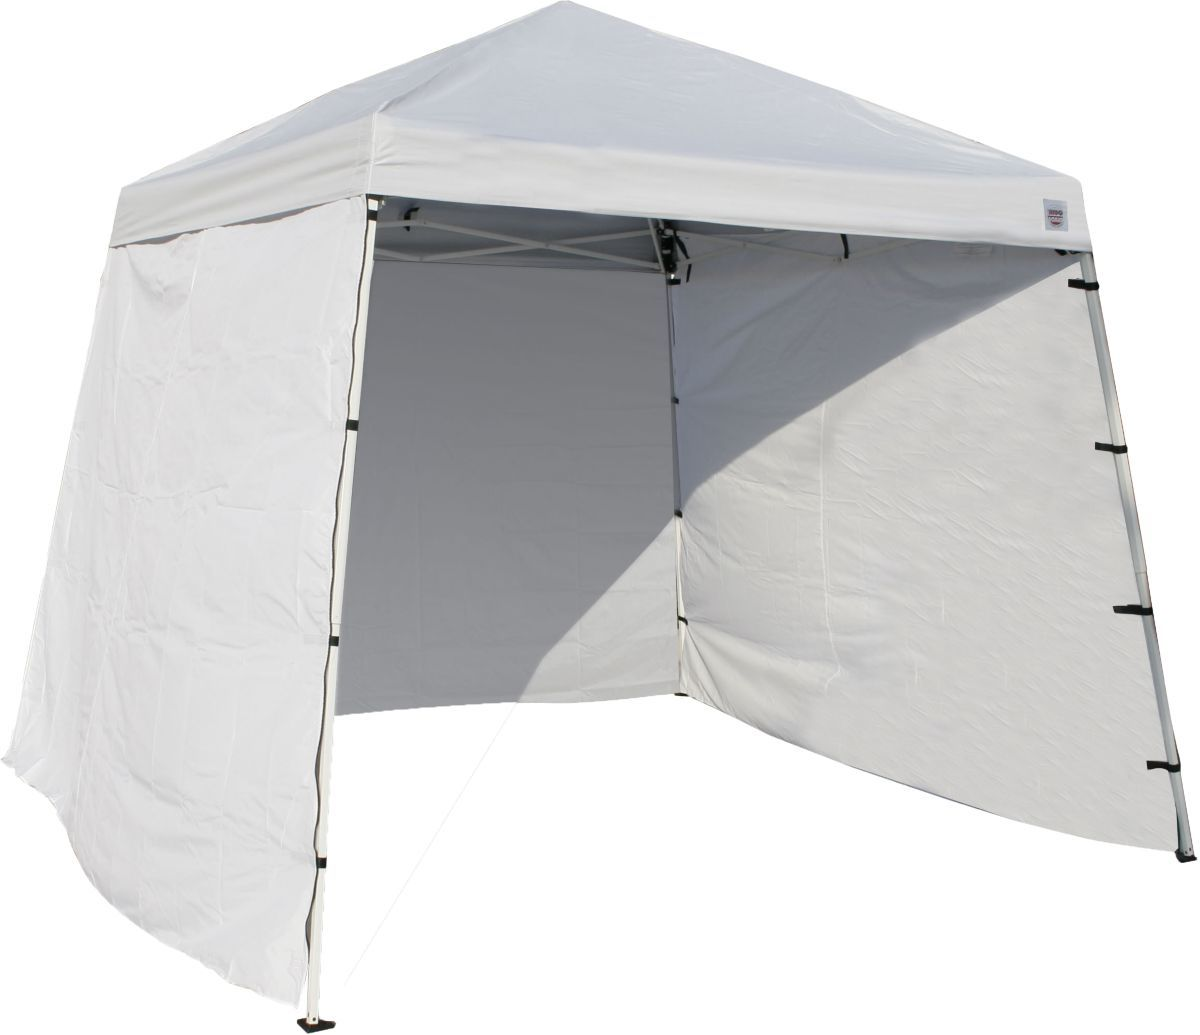 Quik Shade™ Slant-Leg 10-ft. x 10-ft. Canopy Wall Panel